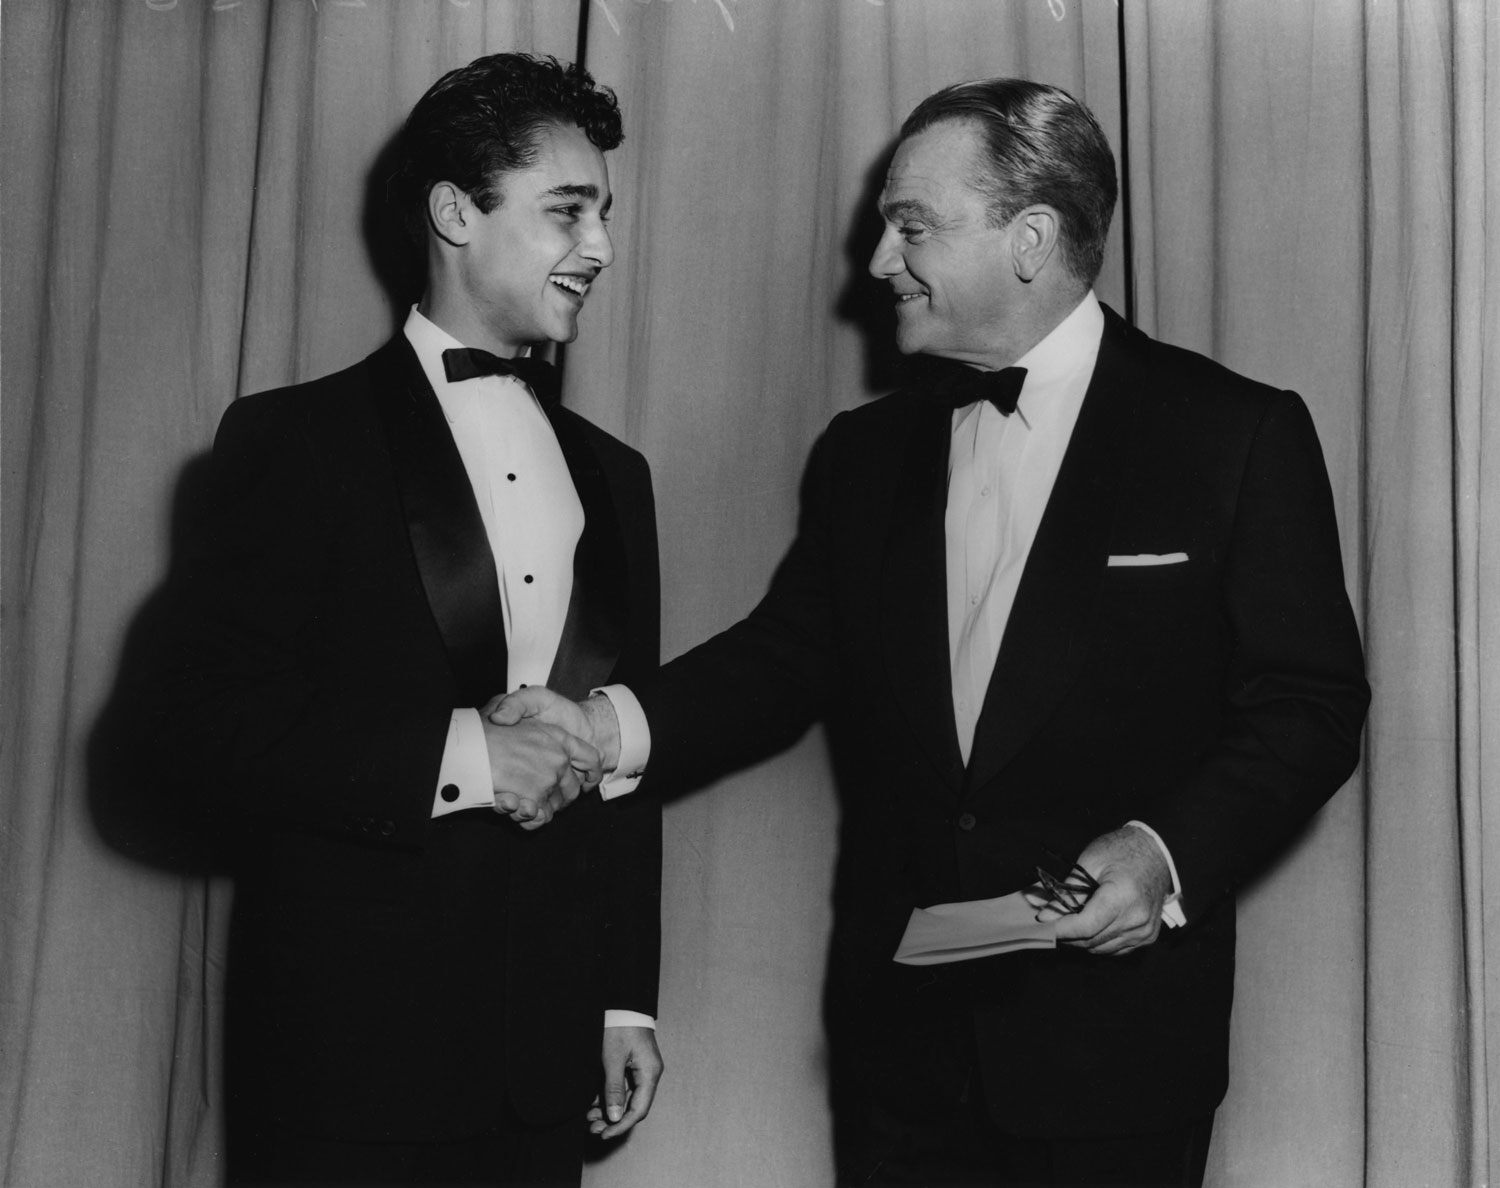 James Dean's costar in Rebel without a Cause was also nominated and greets James Cagney at the Academy Awards.